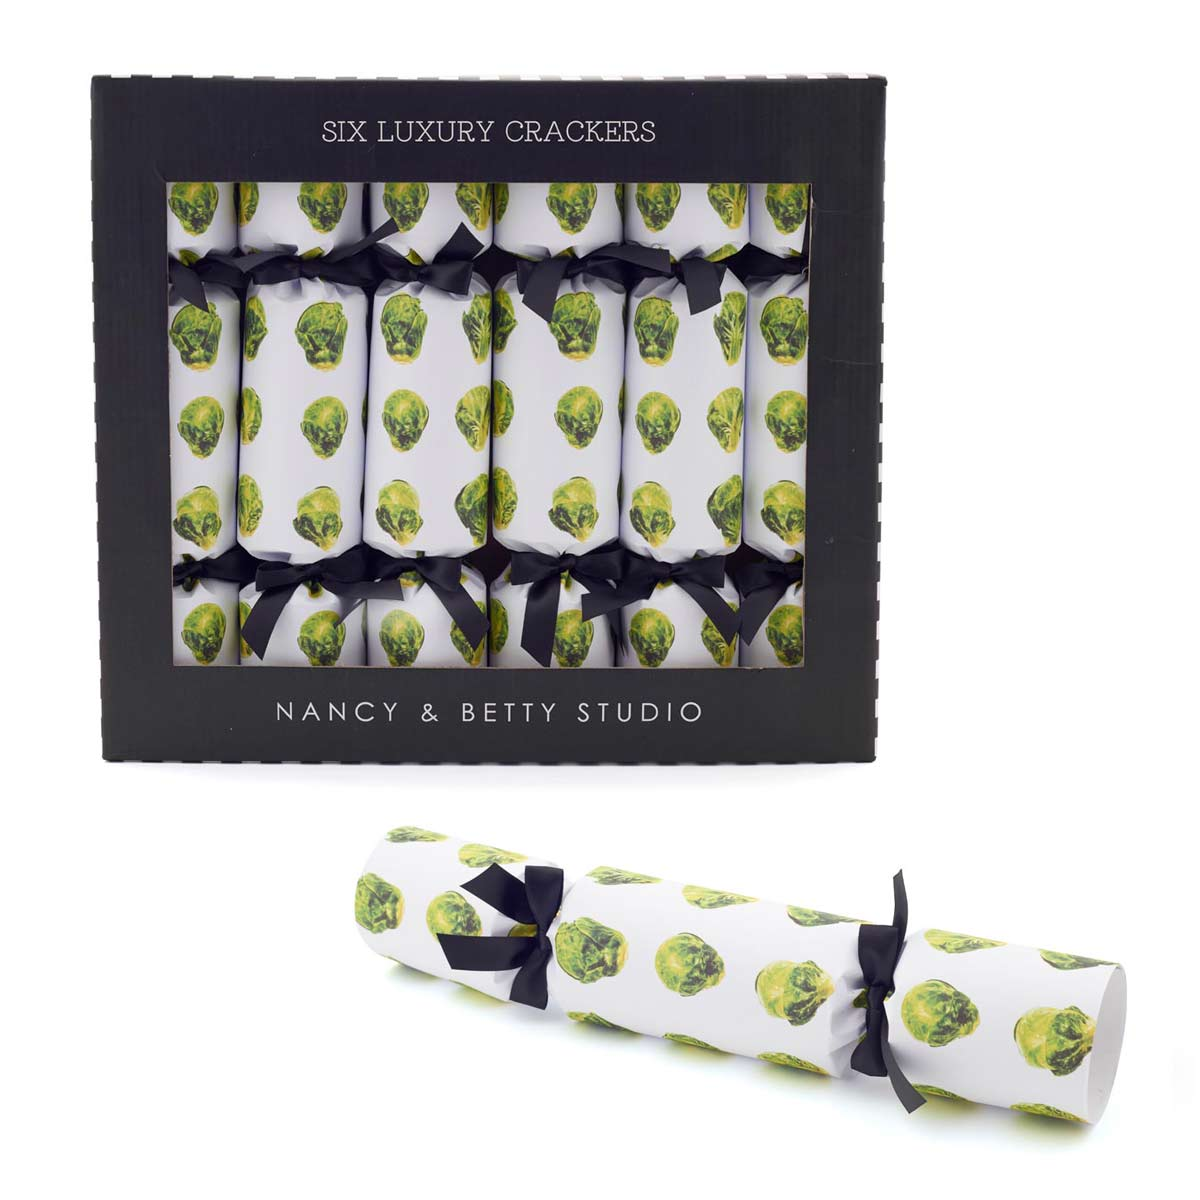 Sprouts Christmas crackers by Nancy & Betty